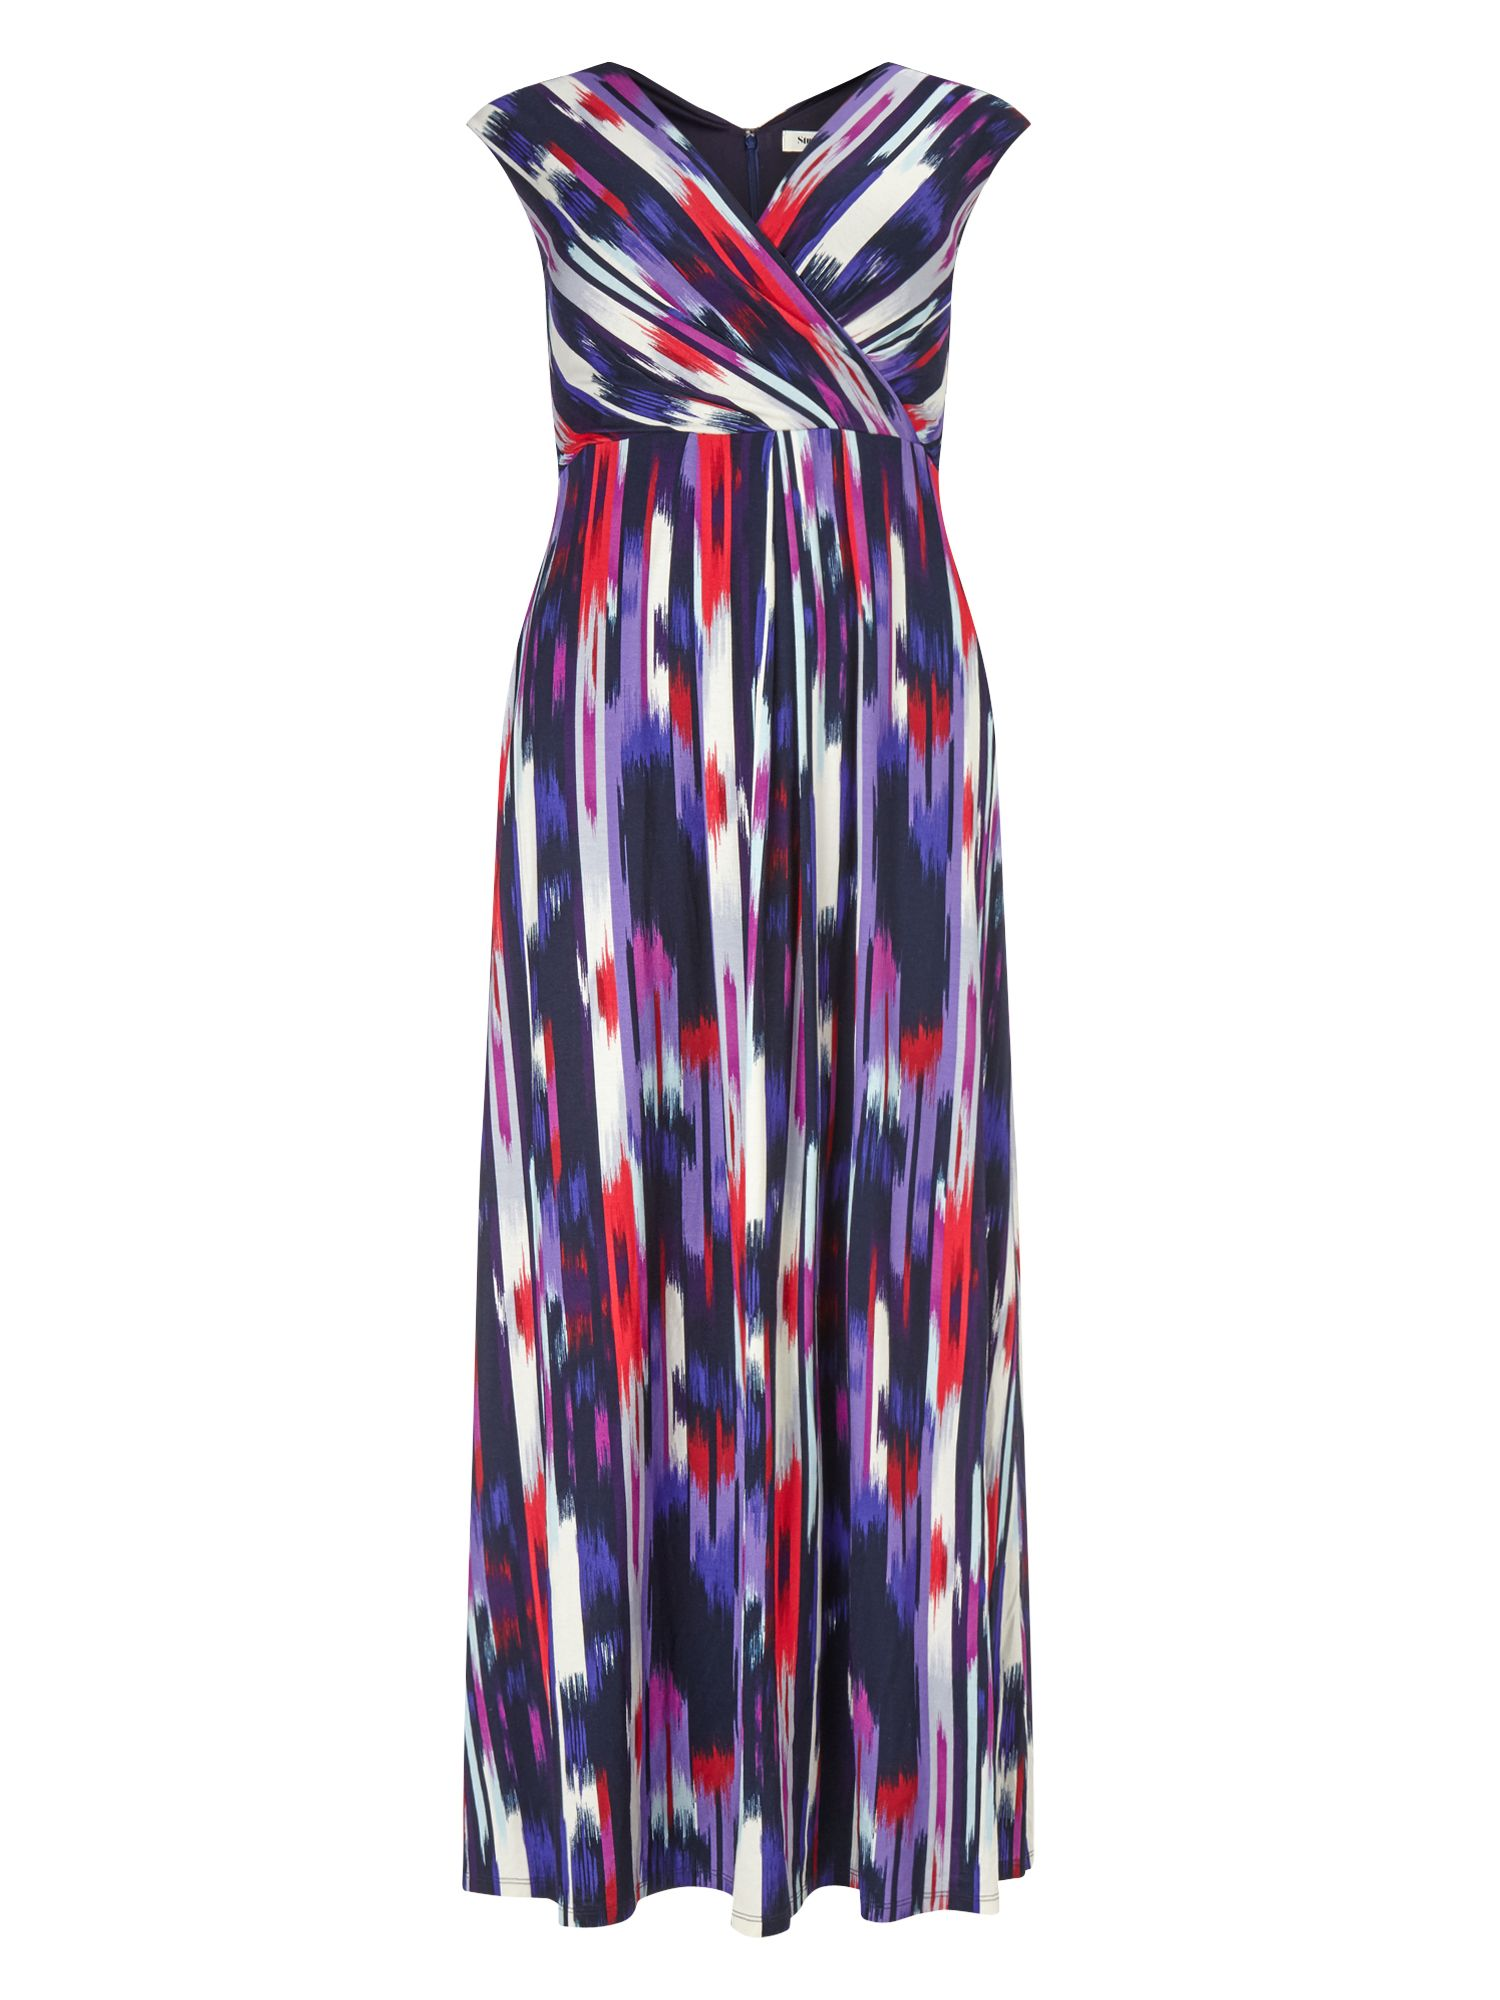 Studio 8 Jolene Maxi Dress, Multi-Coloured